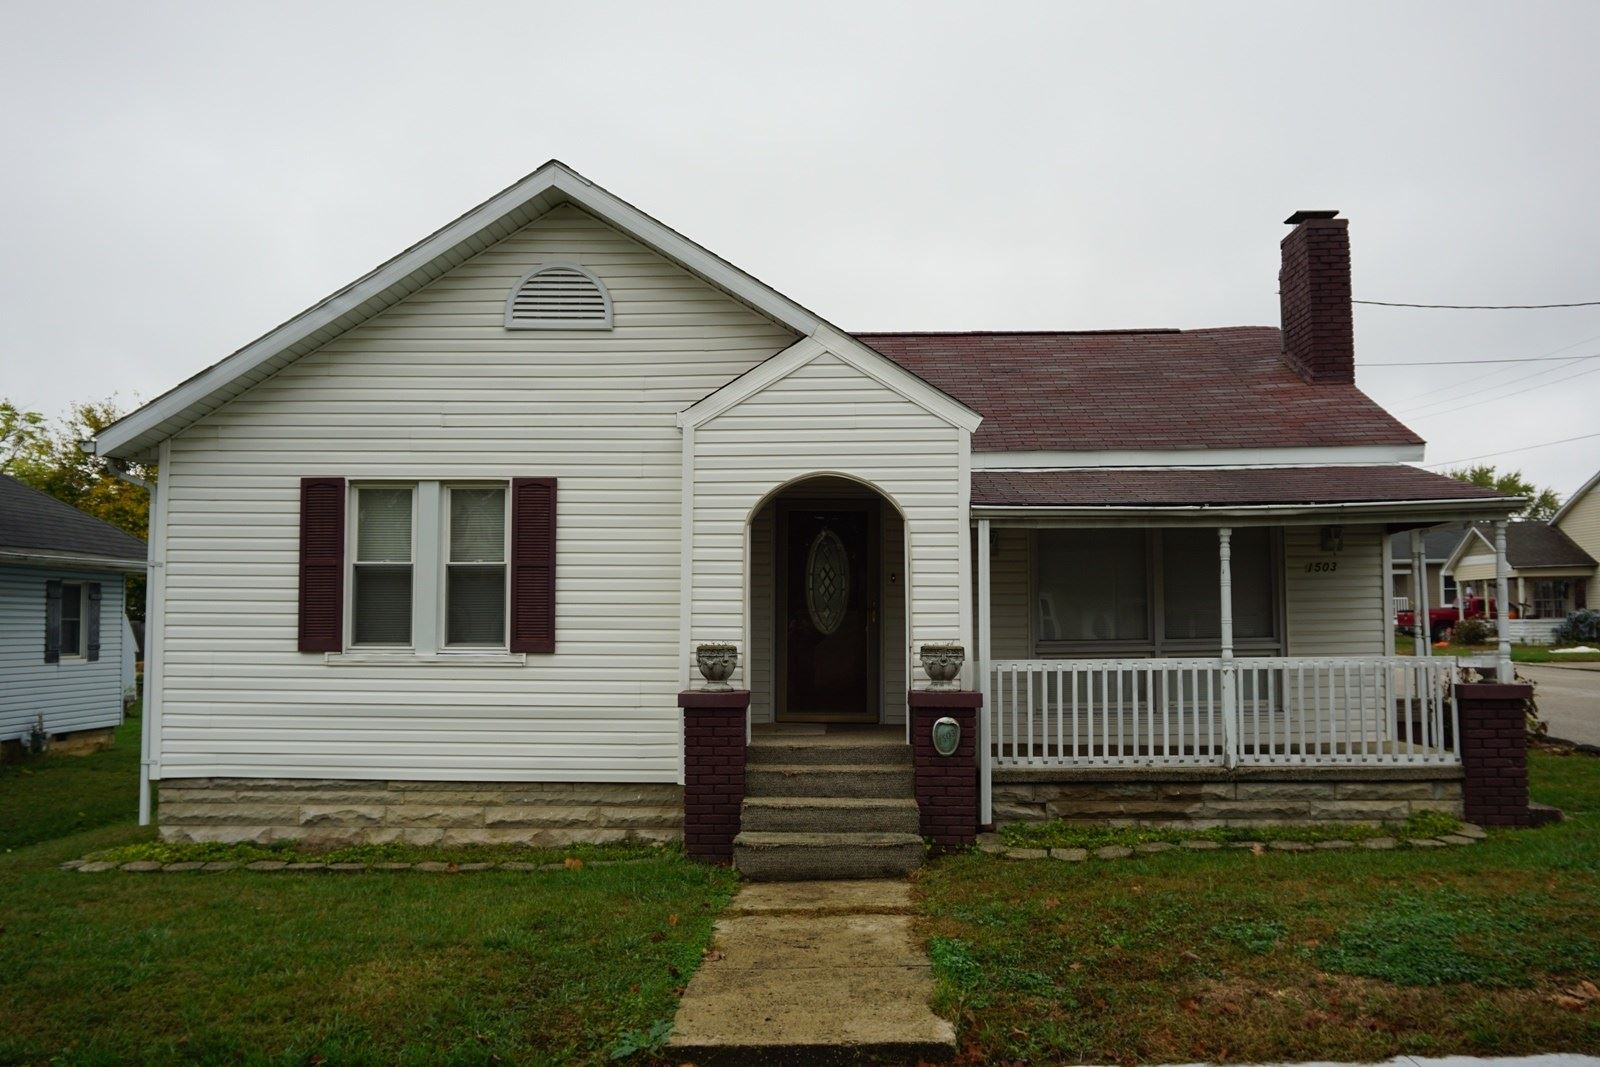 1503 4TH ST, Bedford, IN 47421 - #: 202043398